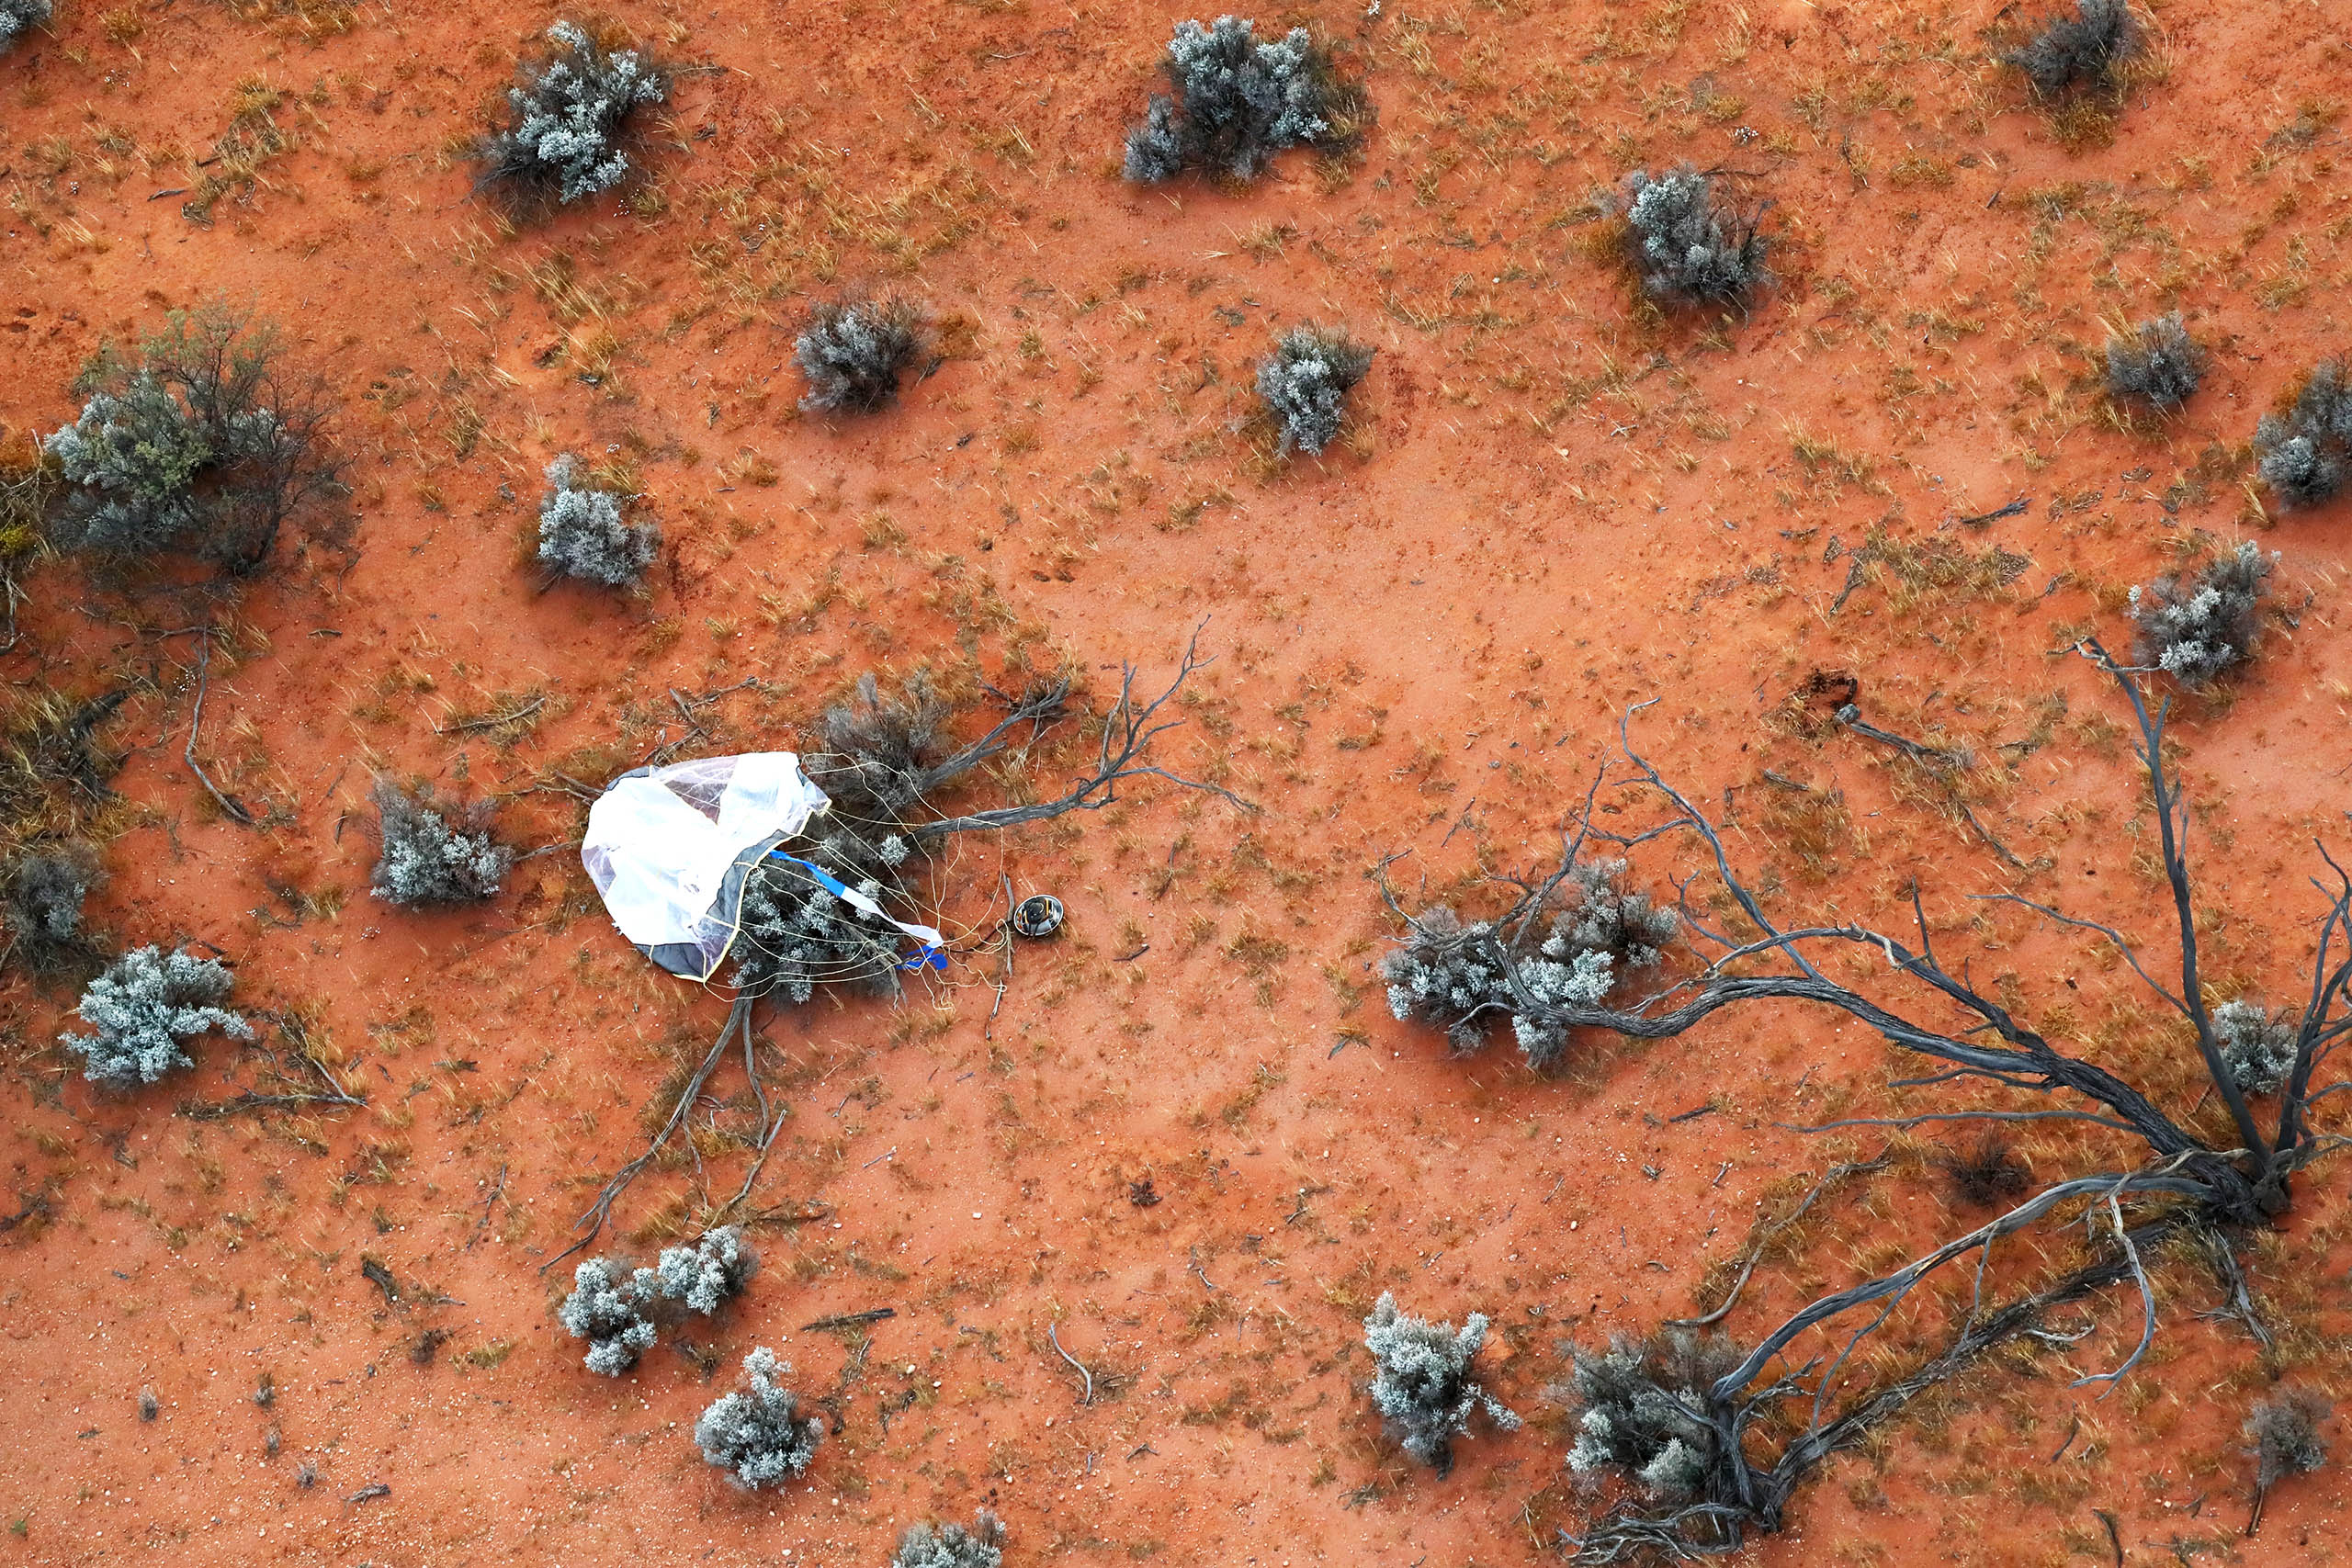 Japanese space capsule carrying asteroid rocks lands in Australian outback